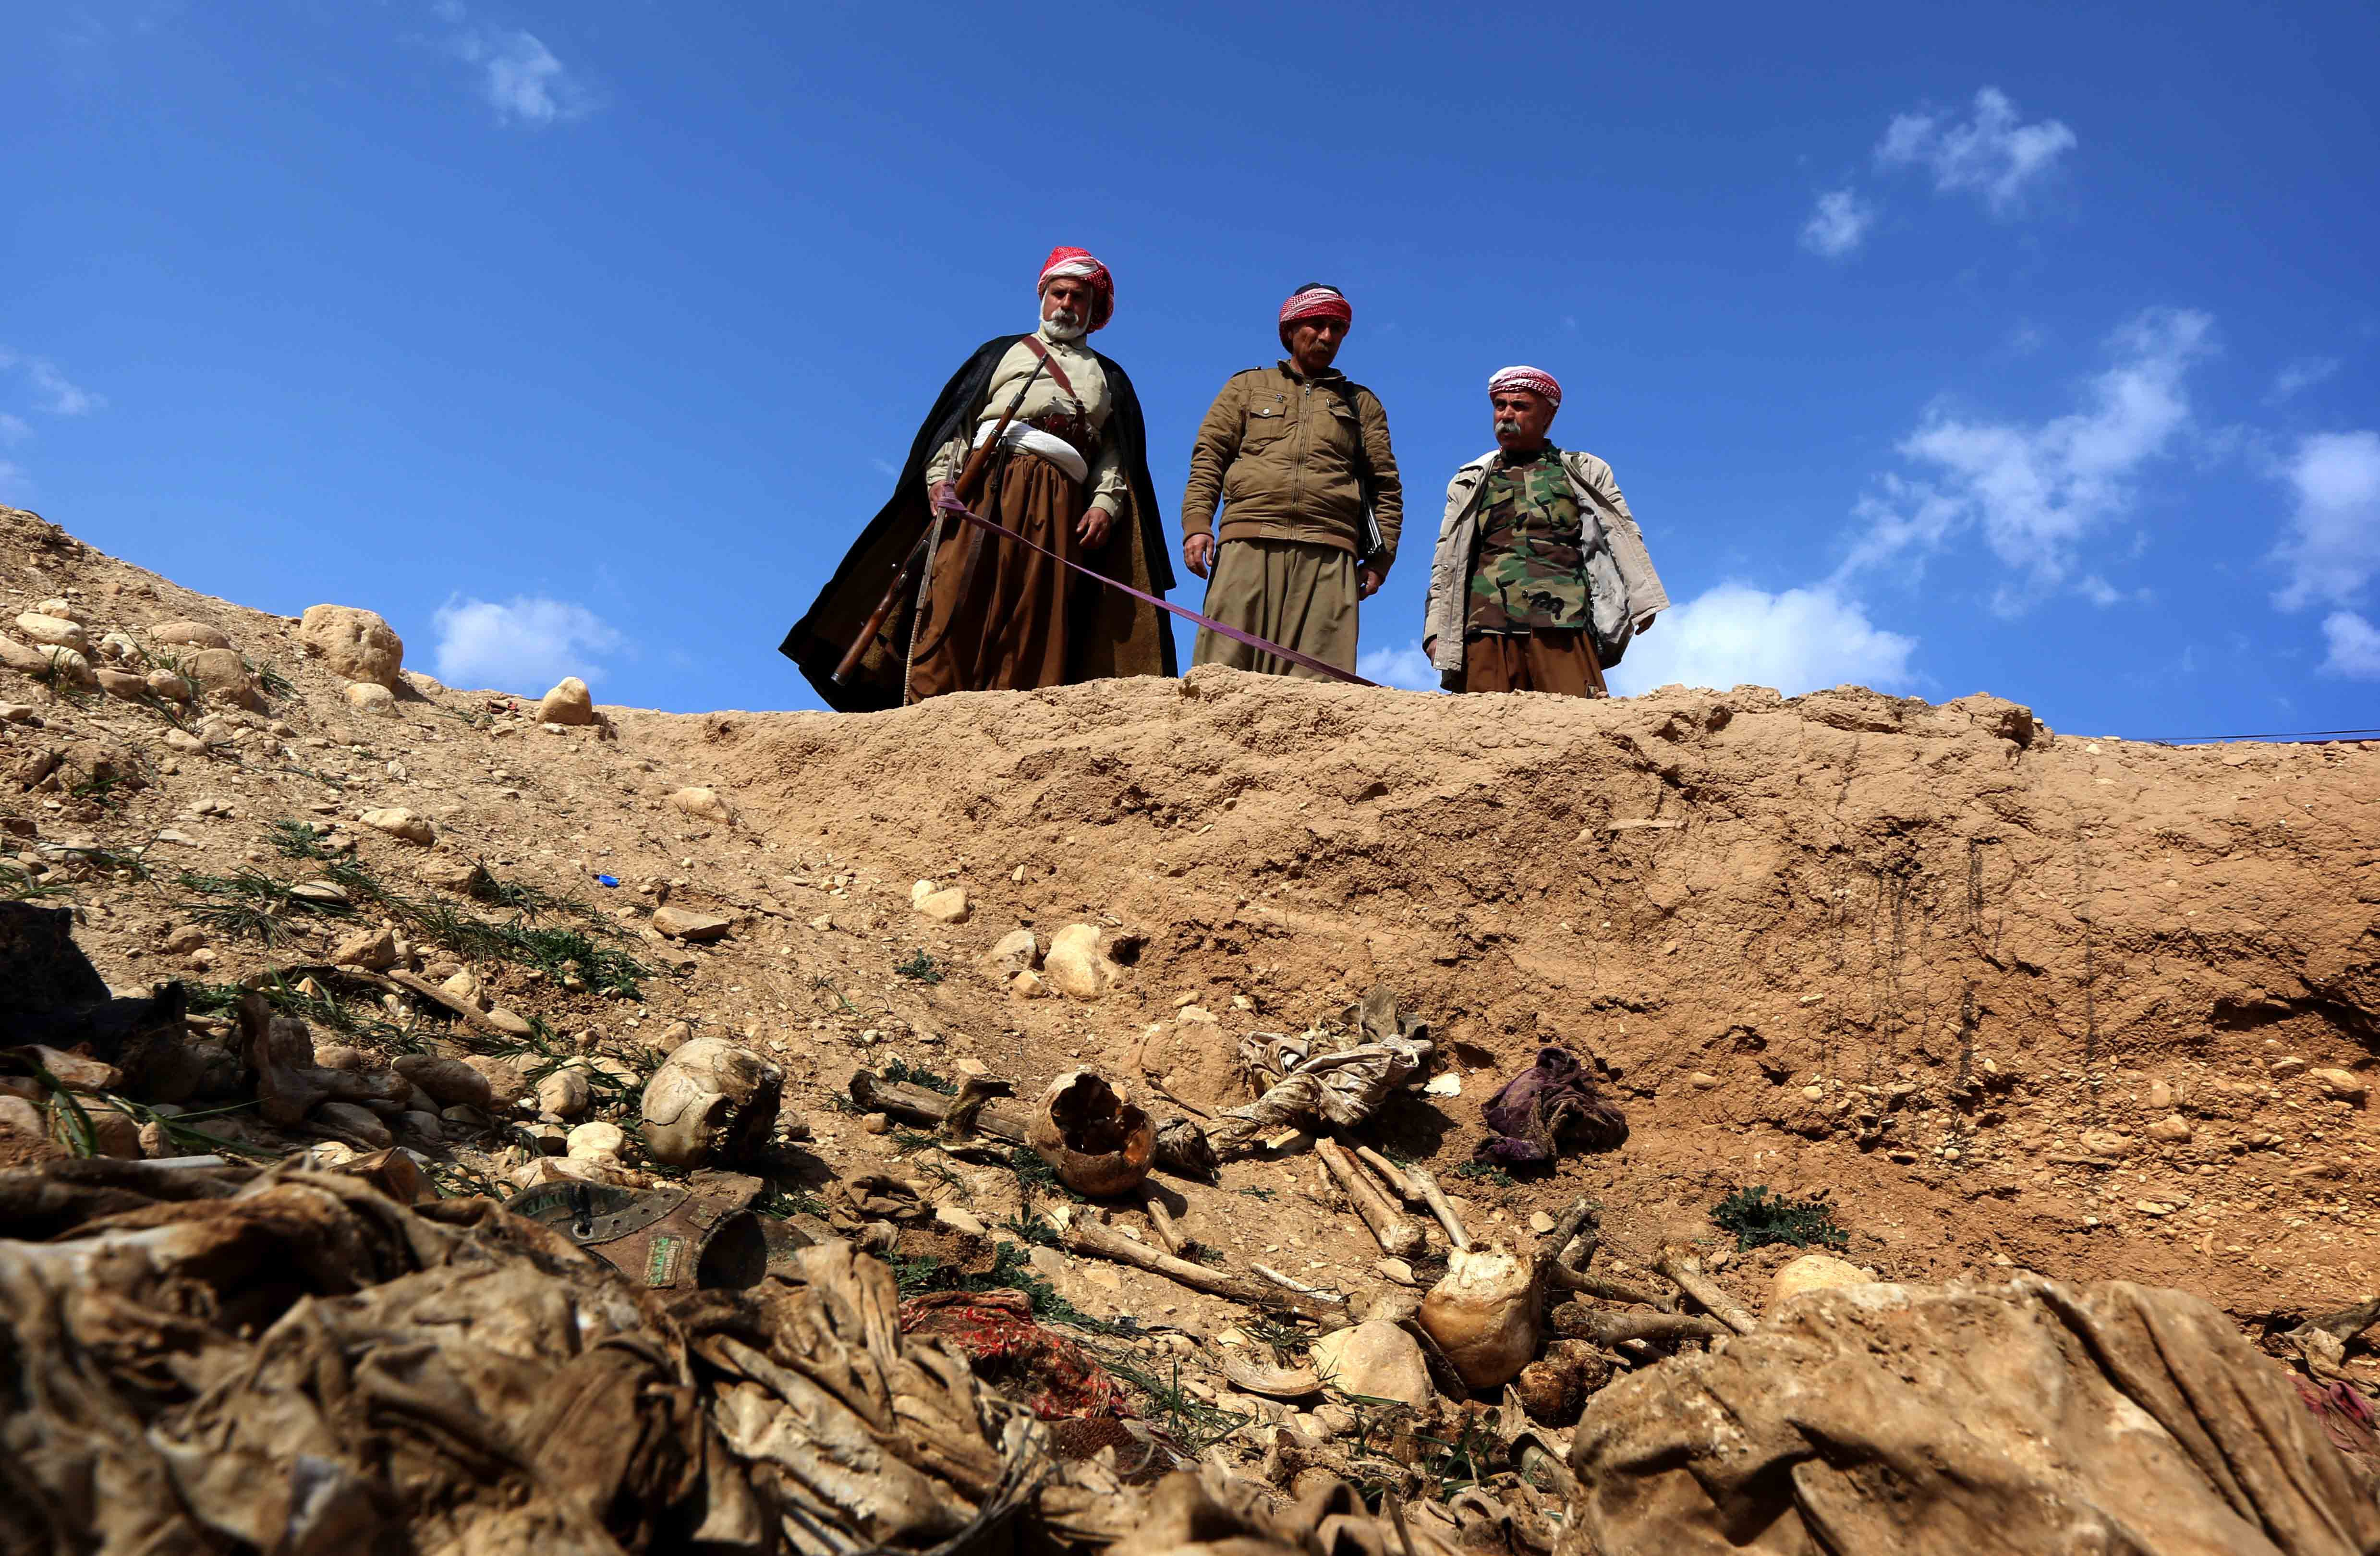 Members of the Yazidi minority search for clues on February 3, 2015, that might lead them to missing relatives in the remains of people killed by the Islamic State (IS) jihadist group, a day after Kurdish forces discovered a mass grave near the Iraqi village of Sinuni, in the northwestern Sinjar area.